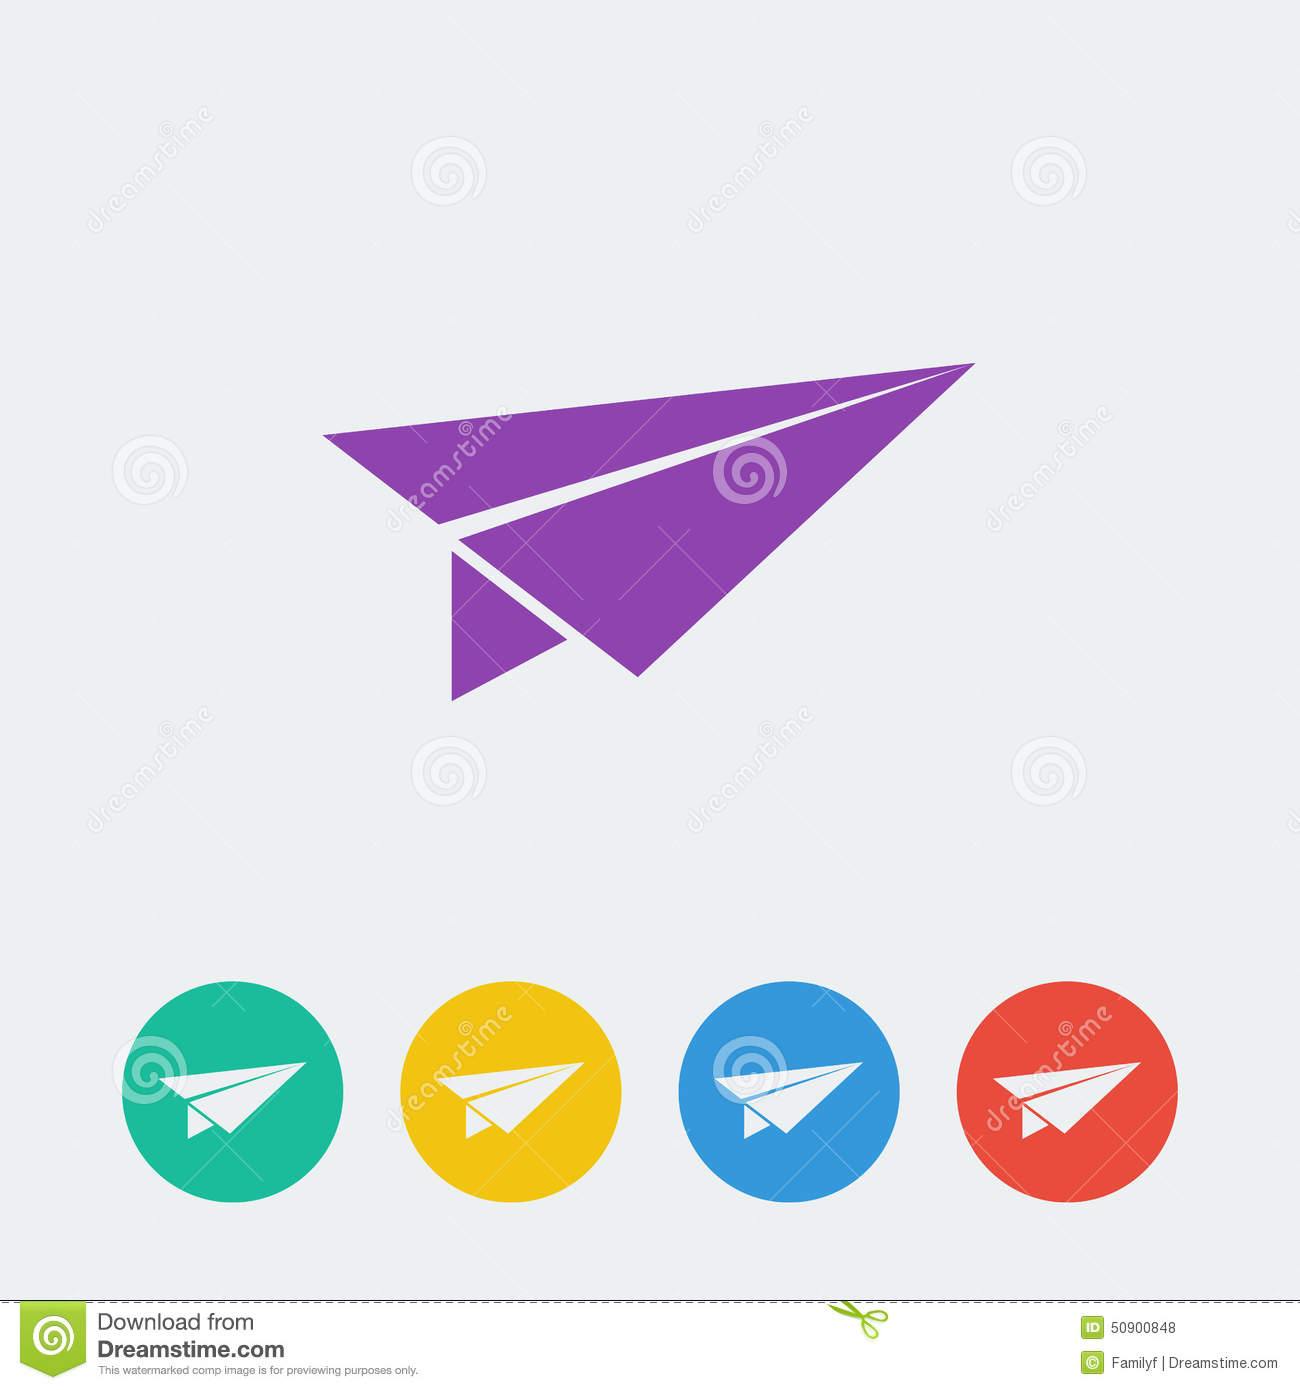 Icon Paper Airplane Vector Illustration | CartoonDealer ...